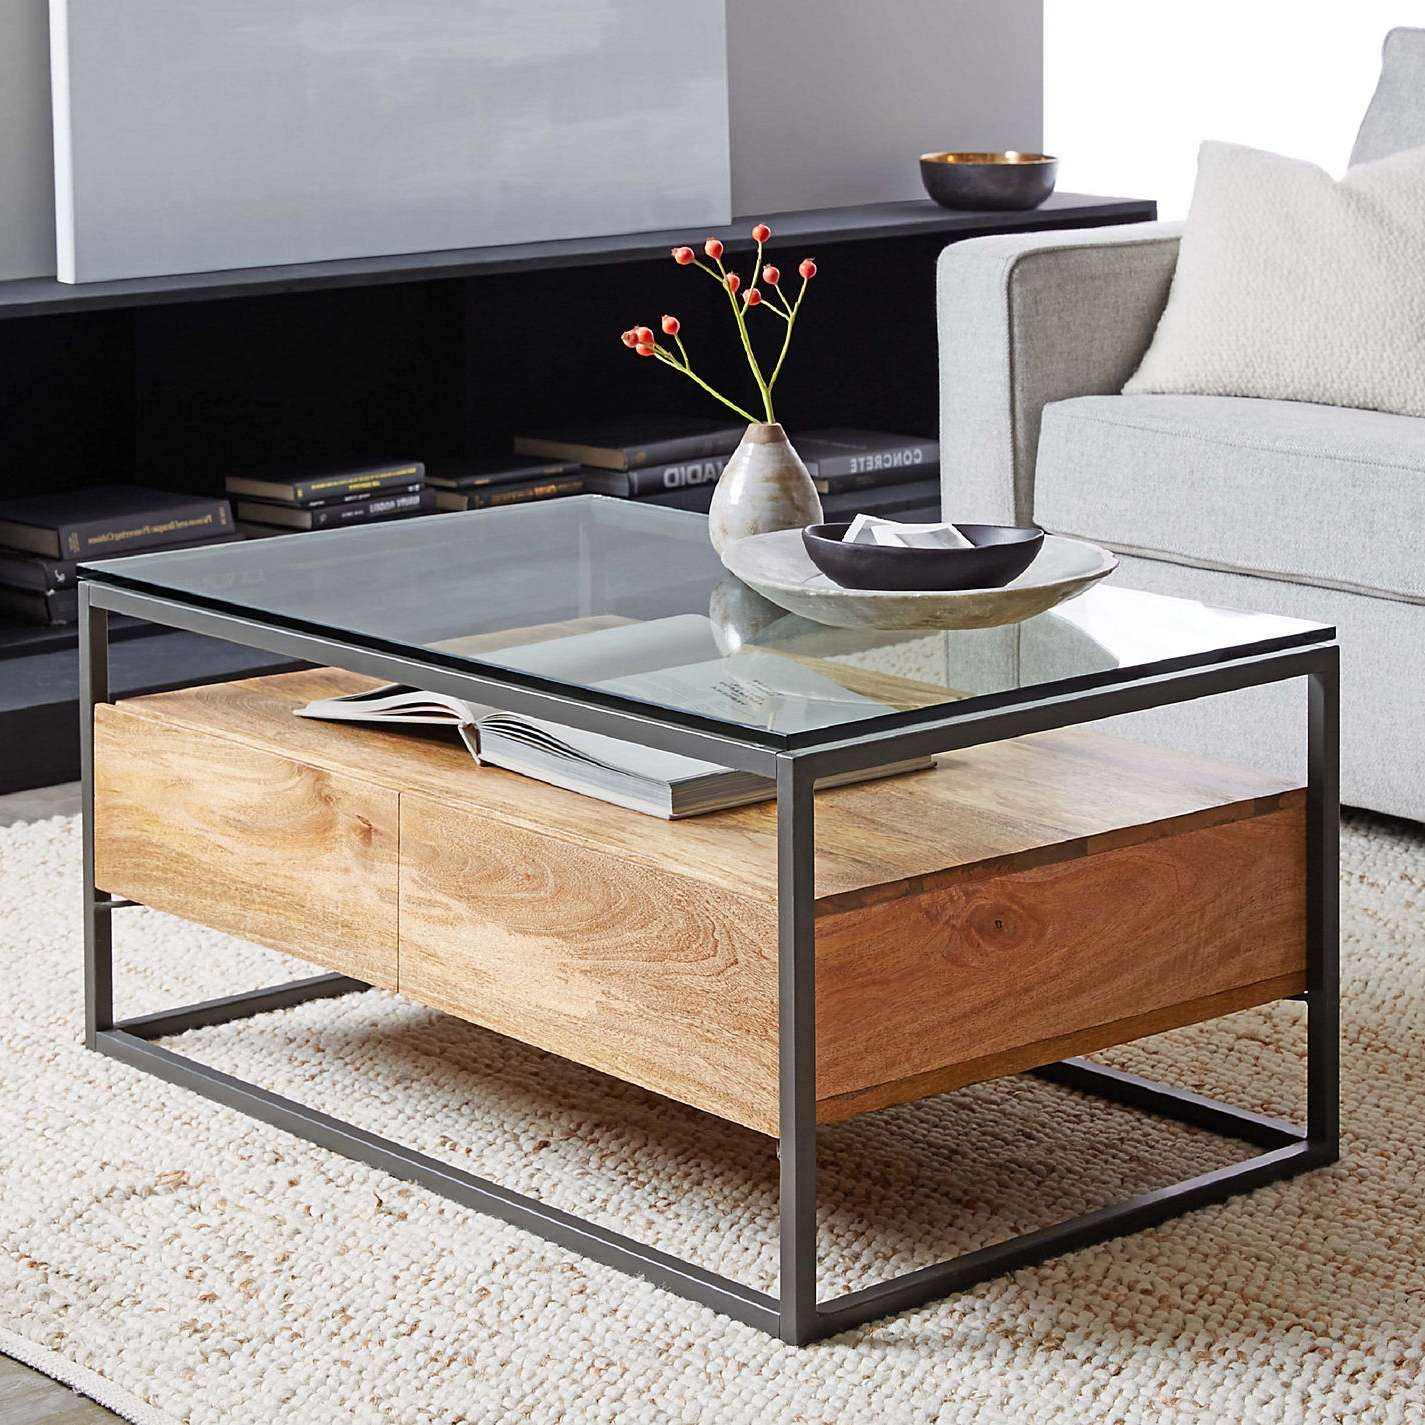 Coffee Table : Fabulous Coffee Table Sets Black Square Coffee In Newest Square Coffee Tables With Storage (View 4 of 20)